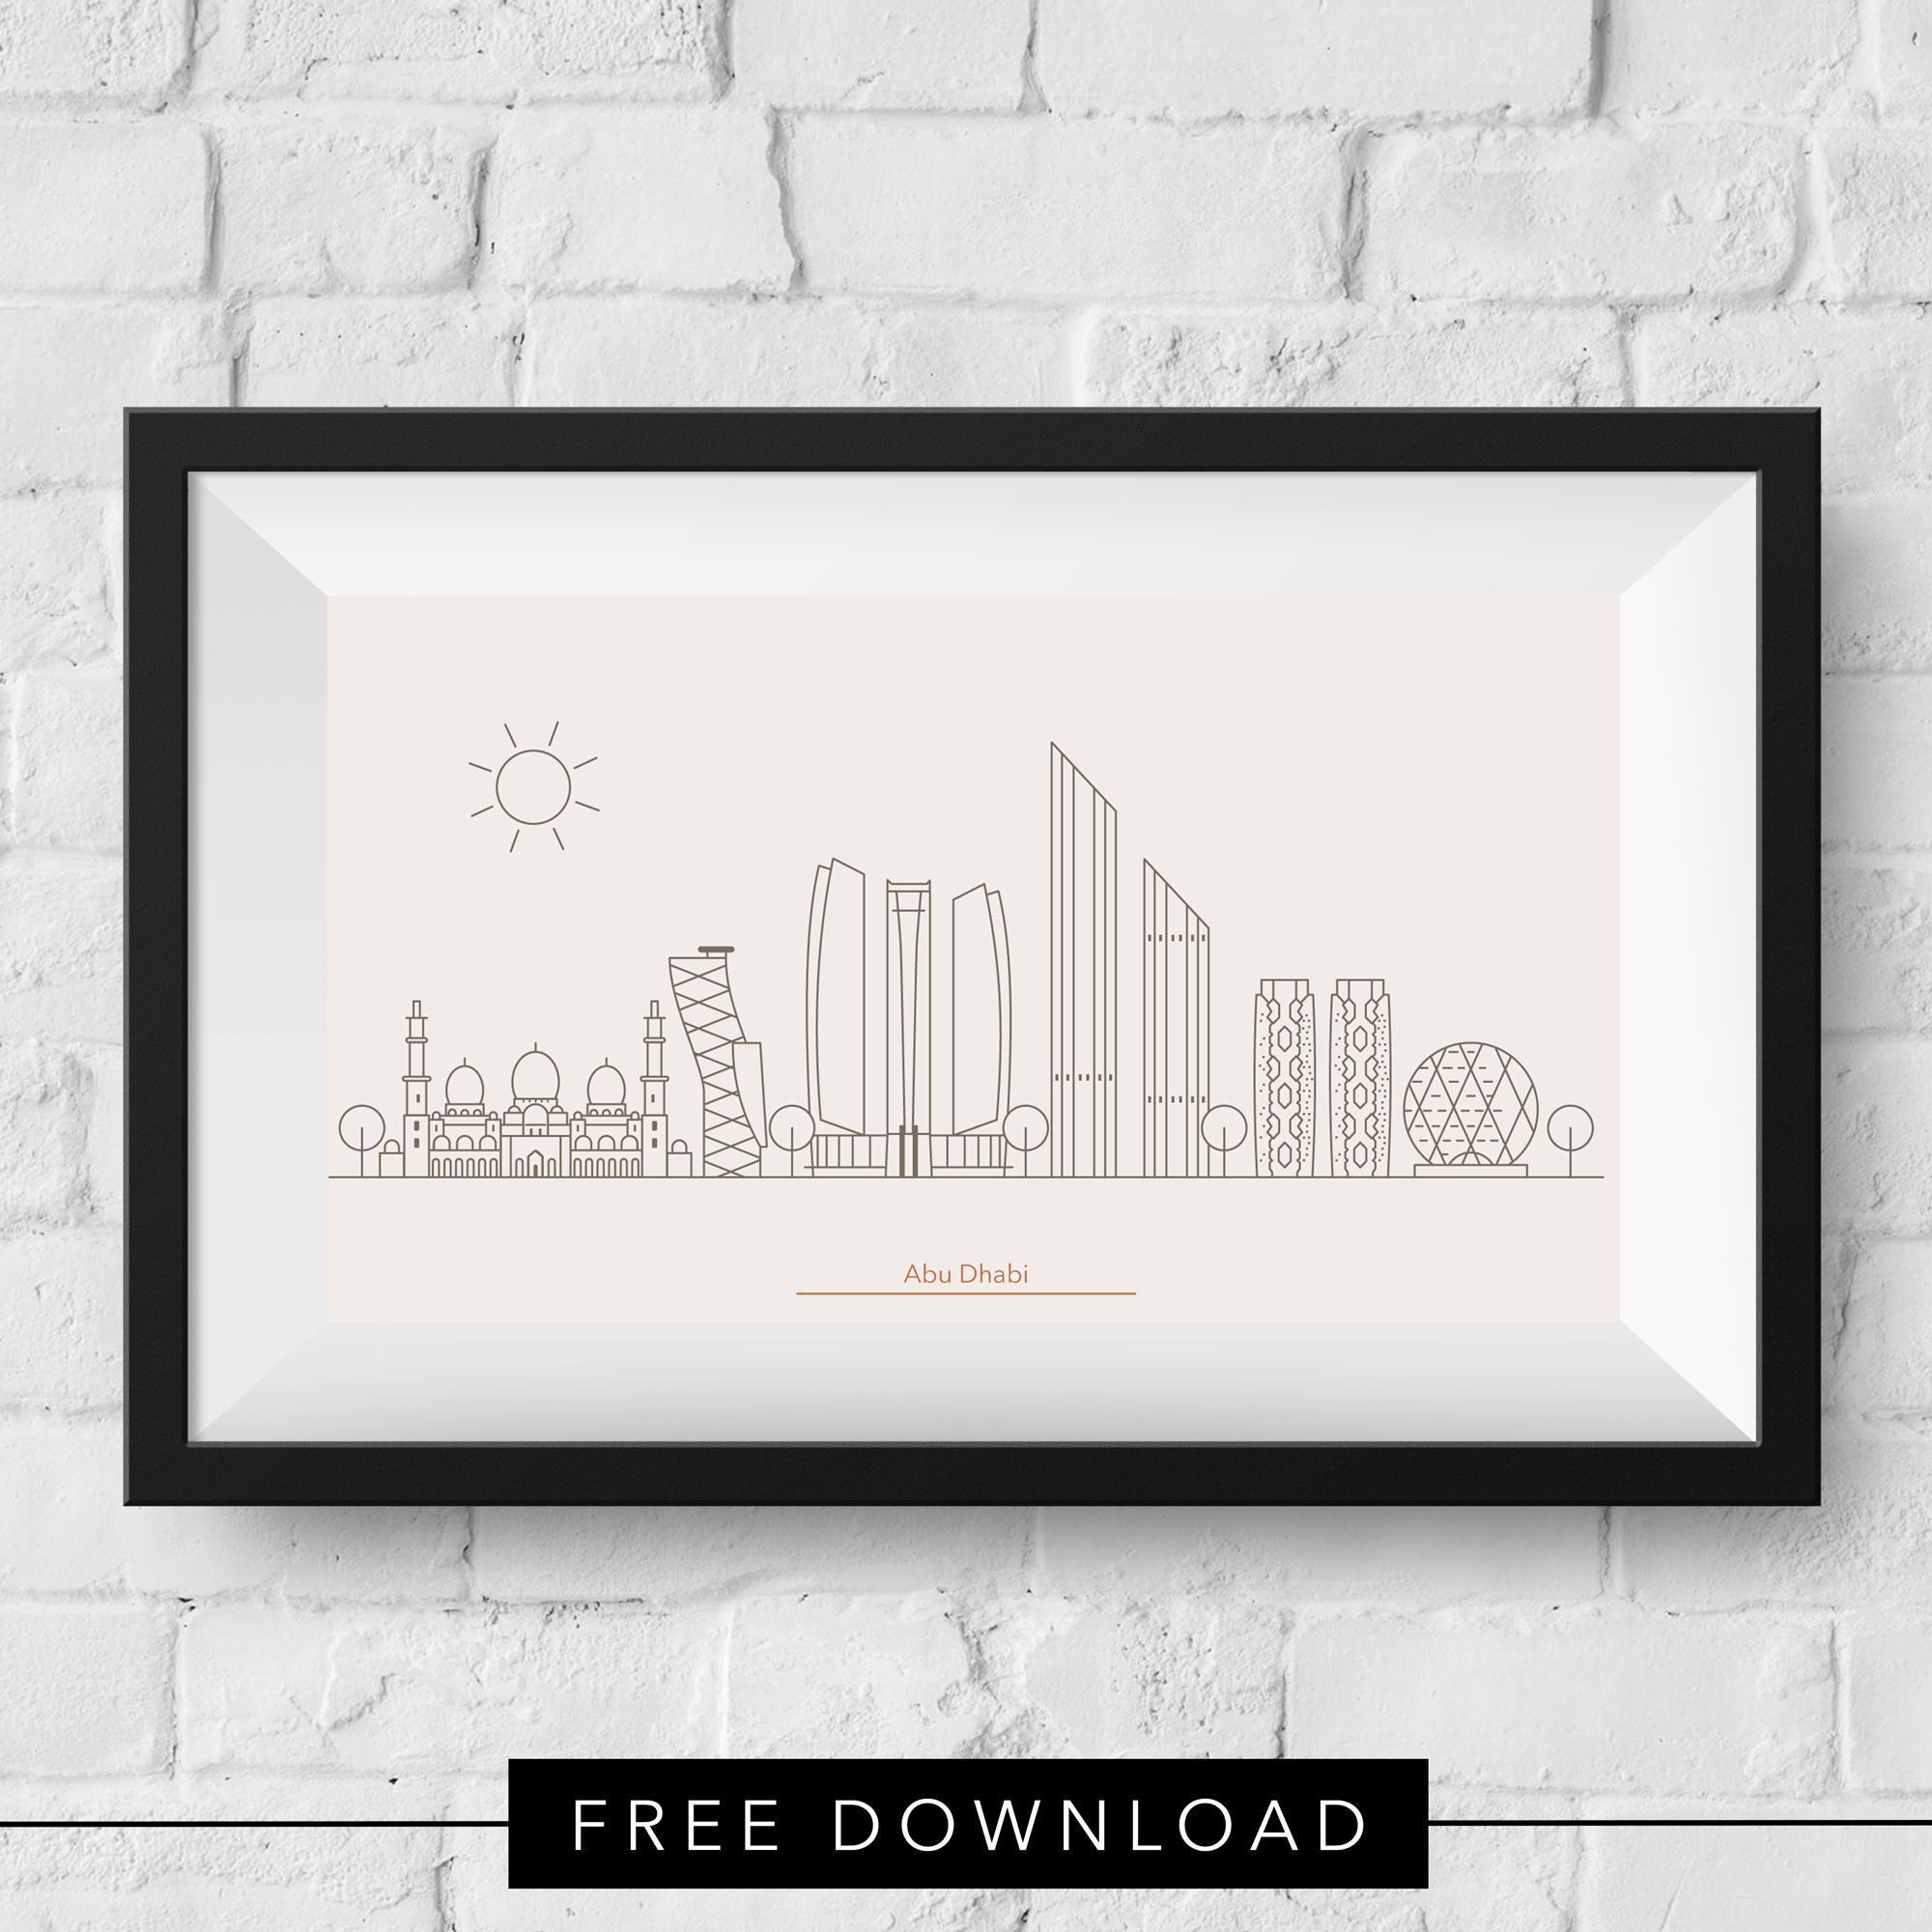 abu-dhabi-skyline-free-download